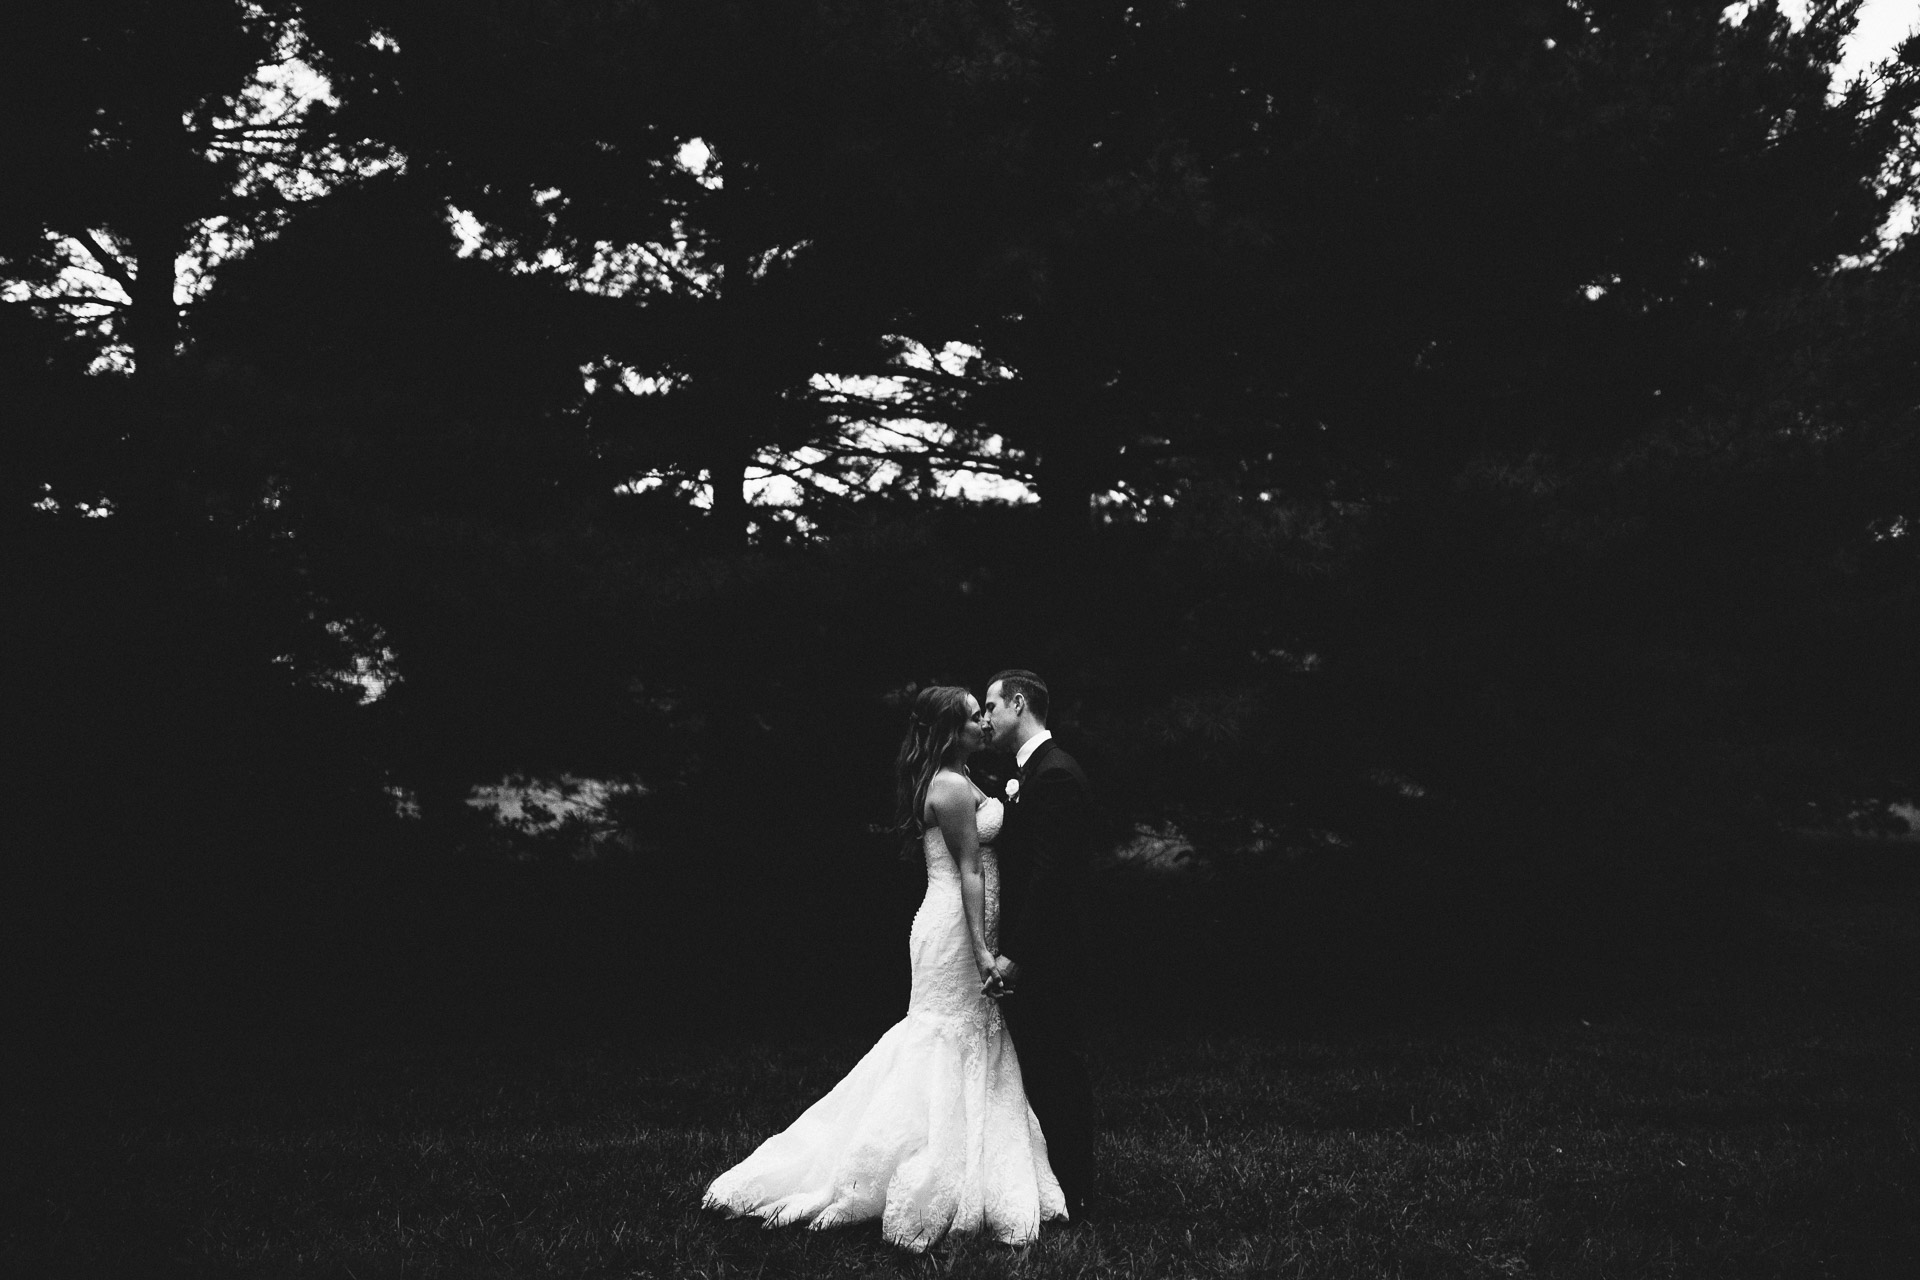 Shawna_Josh_Wedding_Easton_Maryland_JeanLaurentGaudy_123